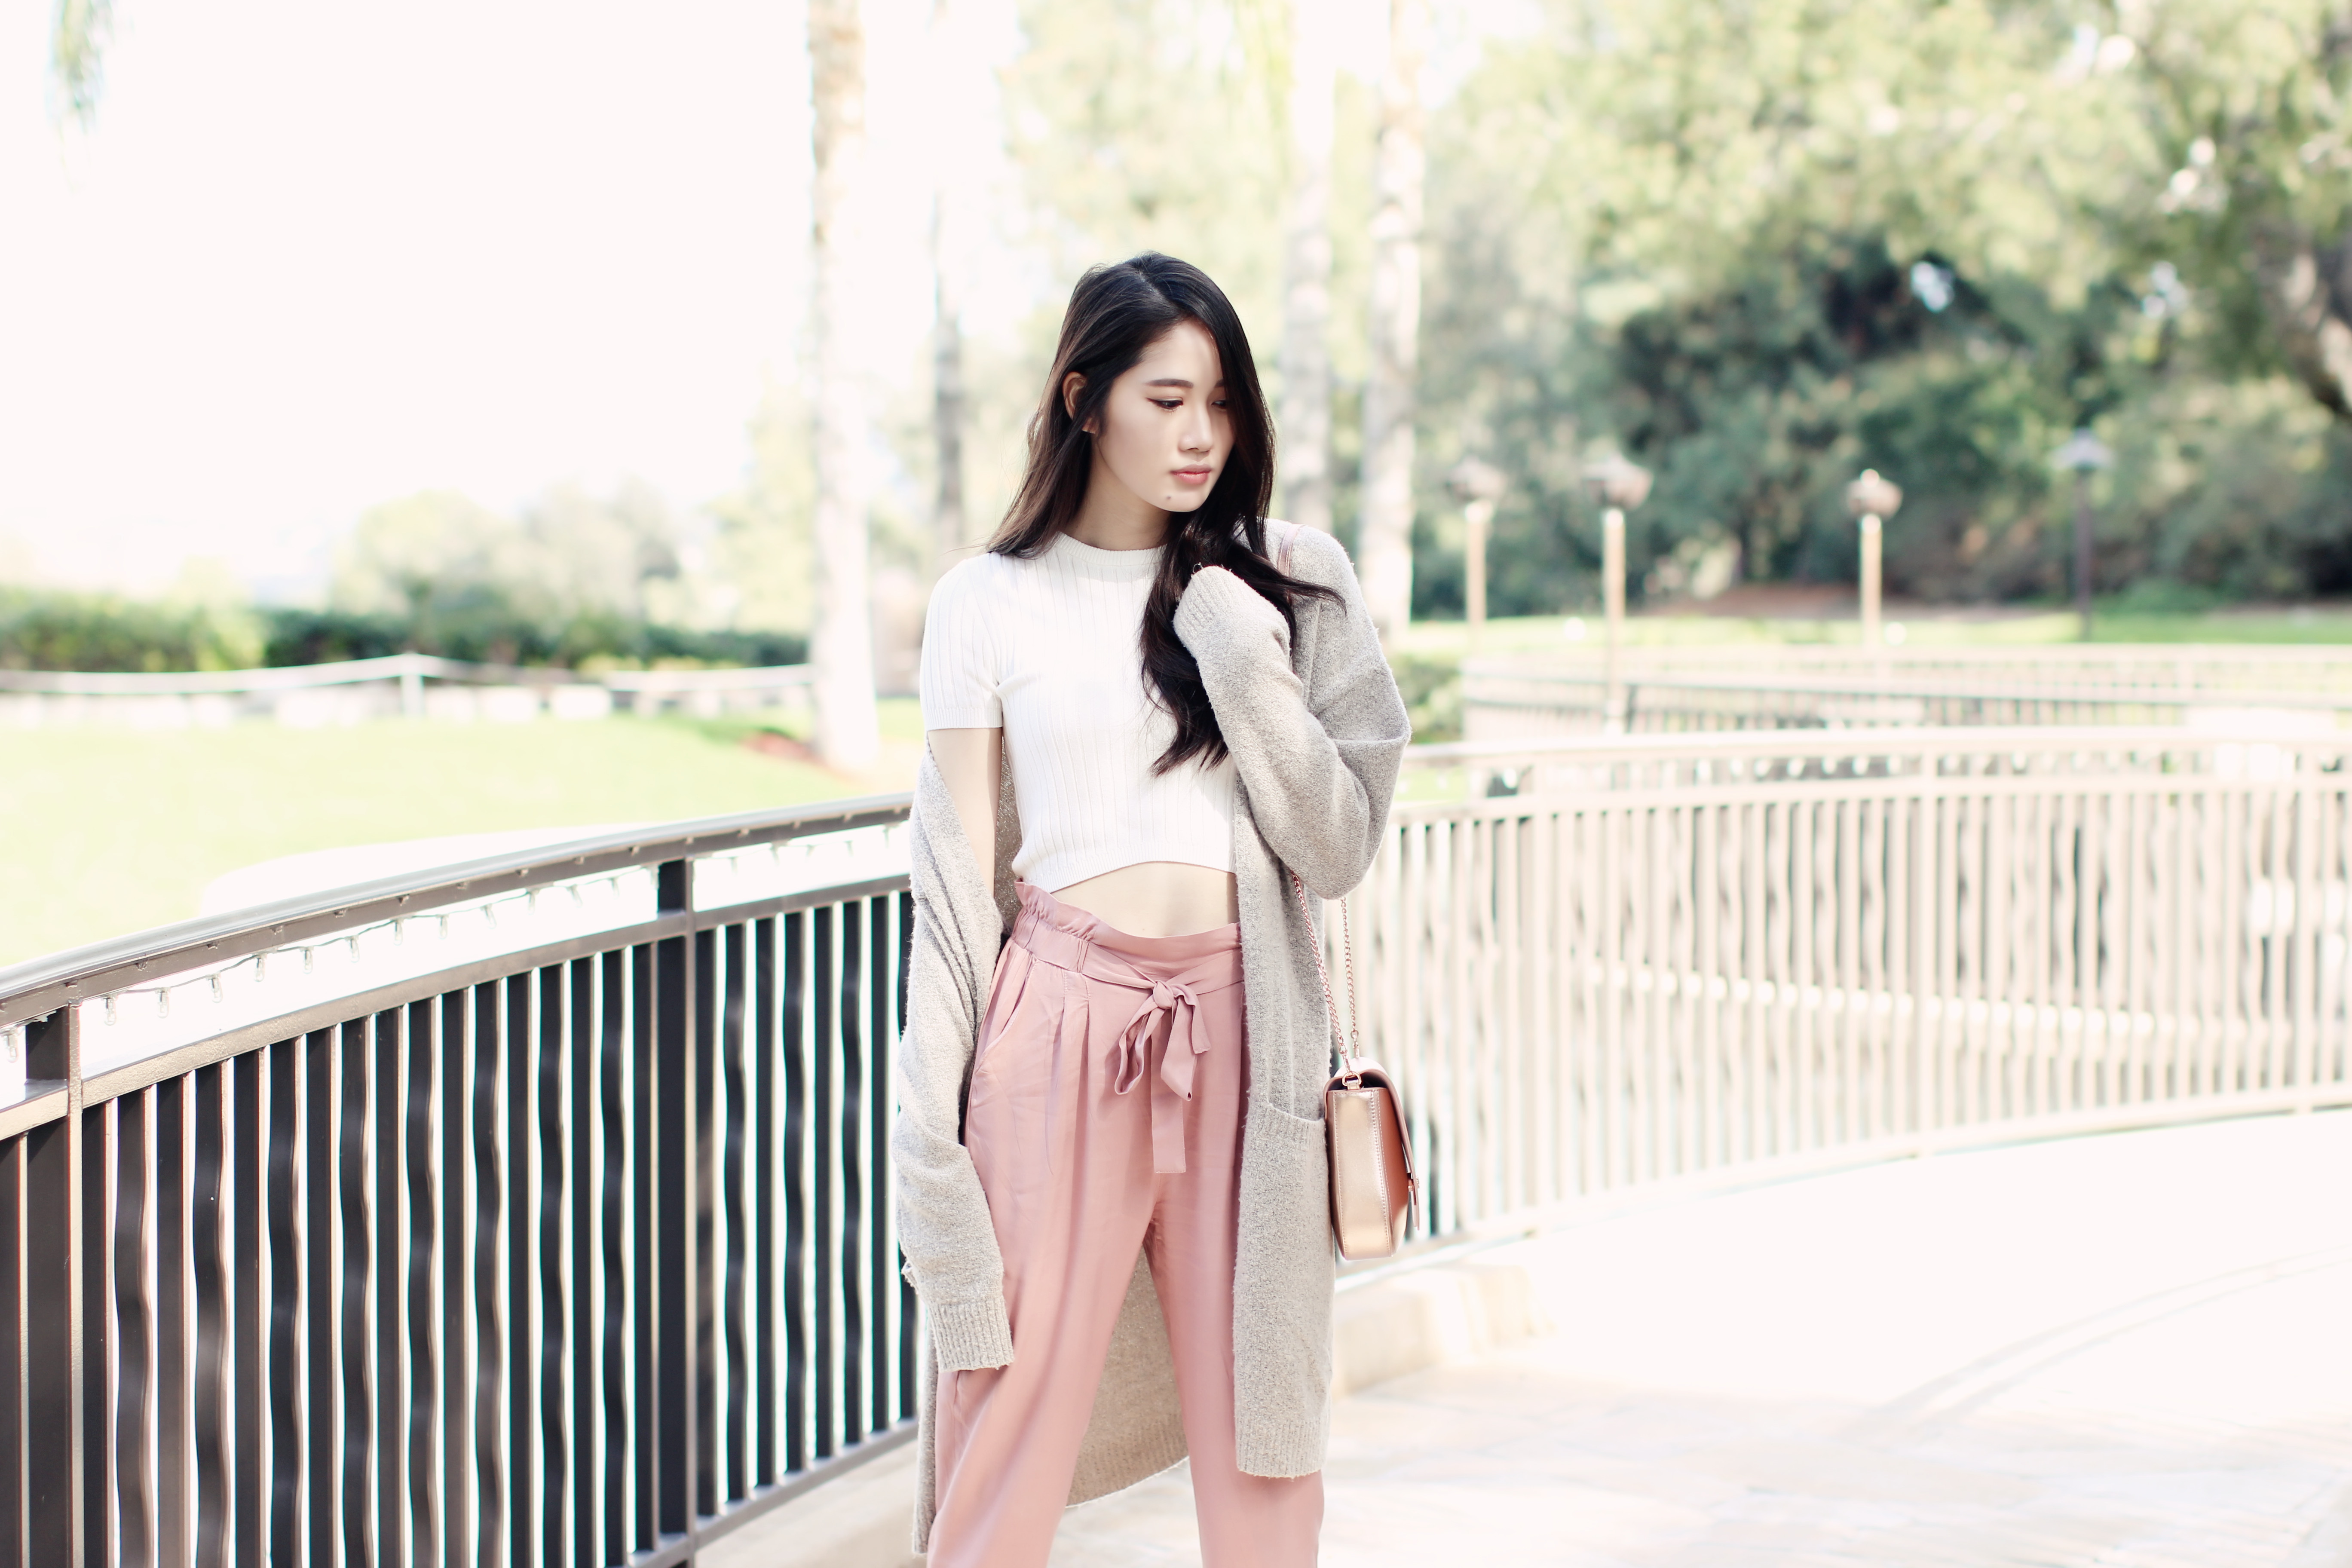 4557-ootd-fashion-style-outfitoftheday-wiwt-streetstyle-forever21-f21xme-anyahindmarch-ninewest-trousers-elizabeeetht-clothestoyouuu